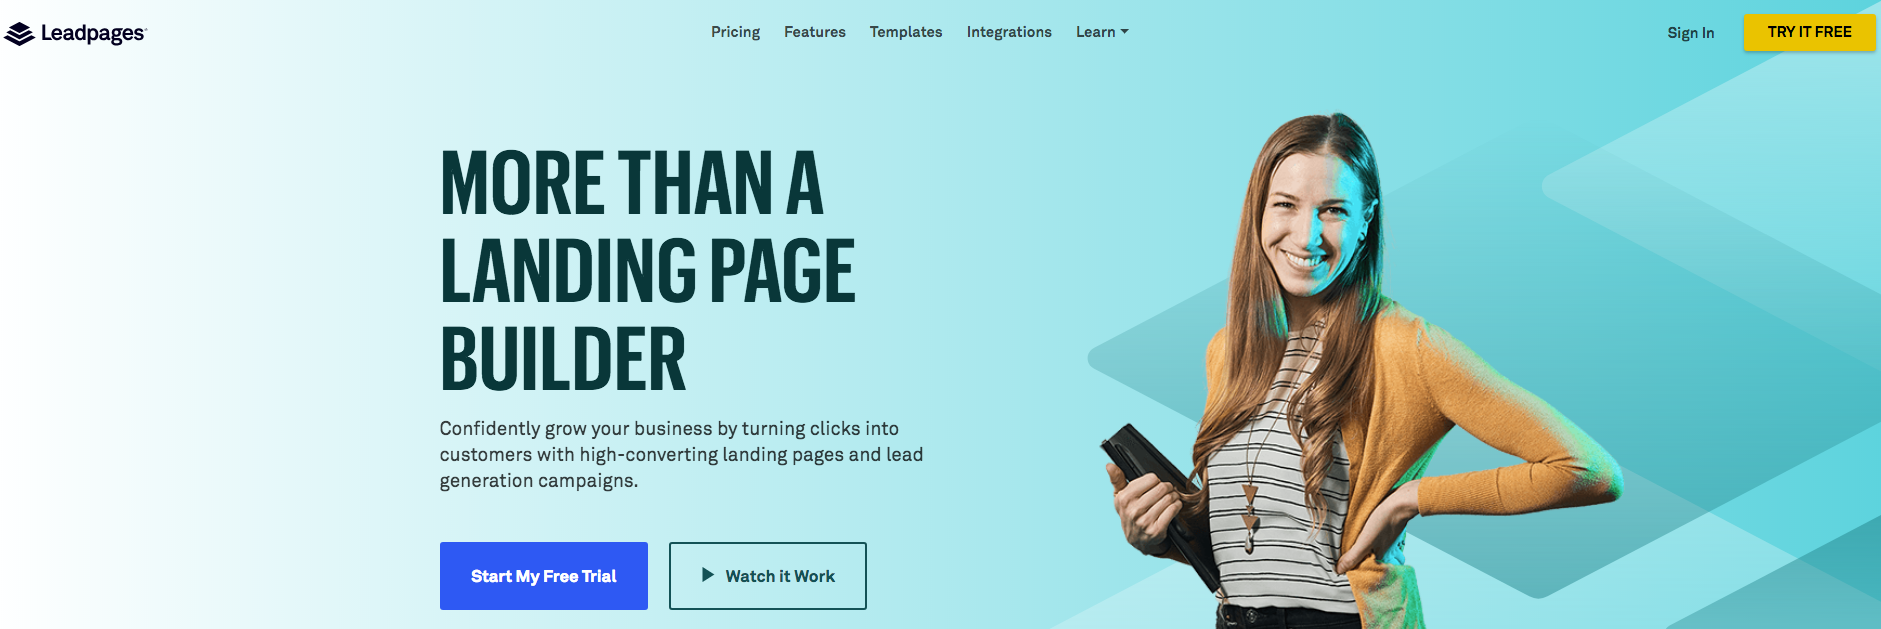 landing page con leadpages